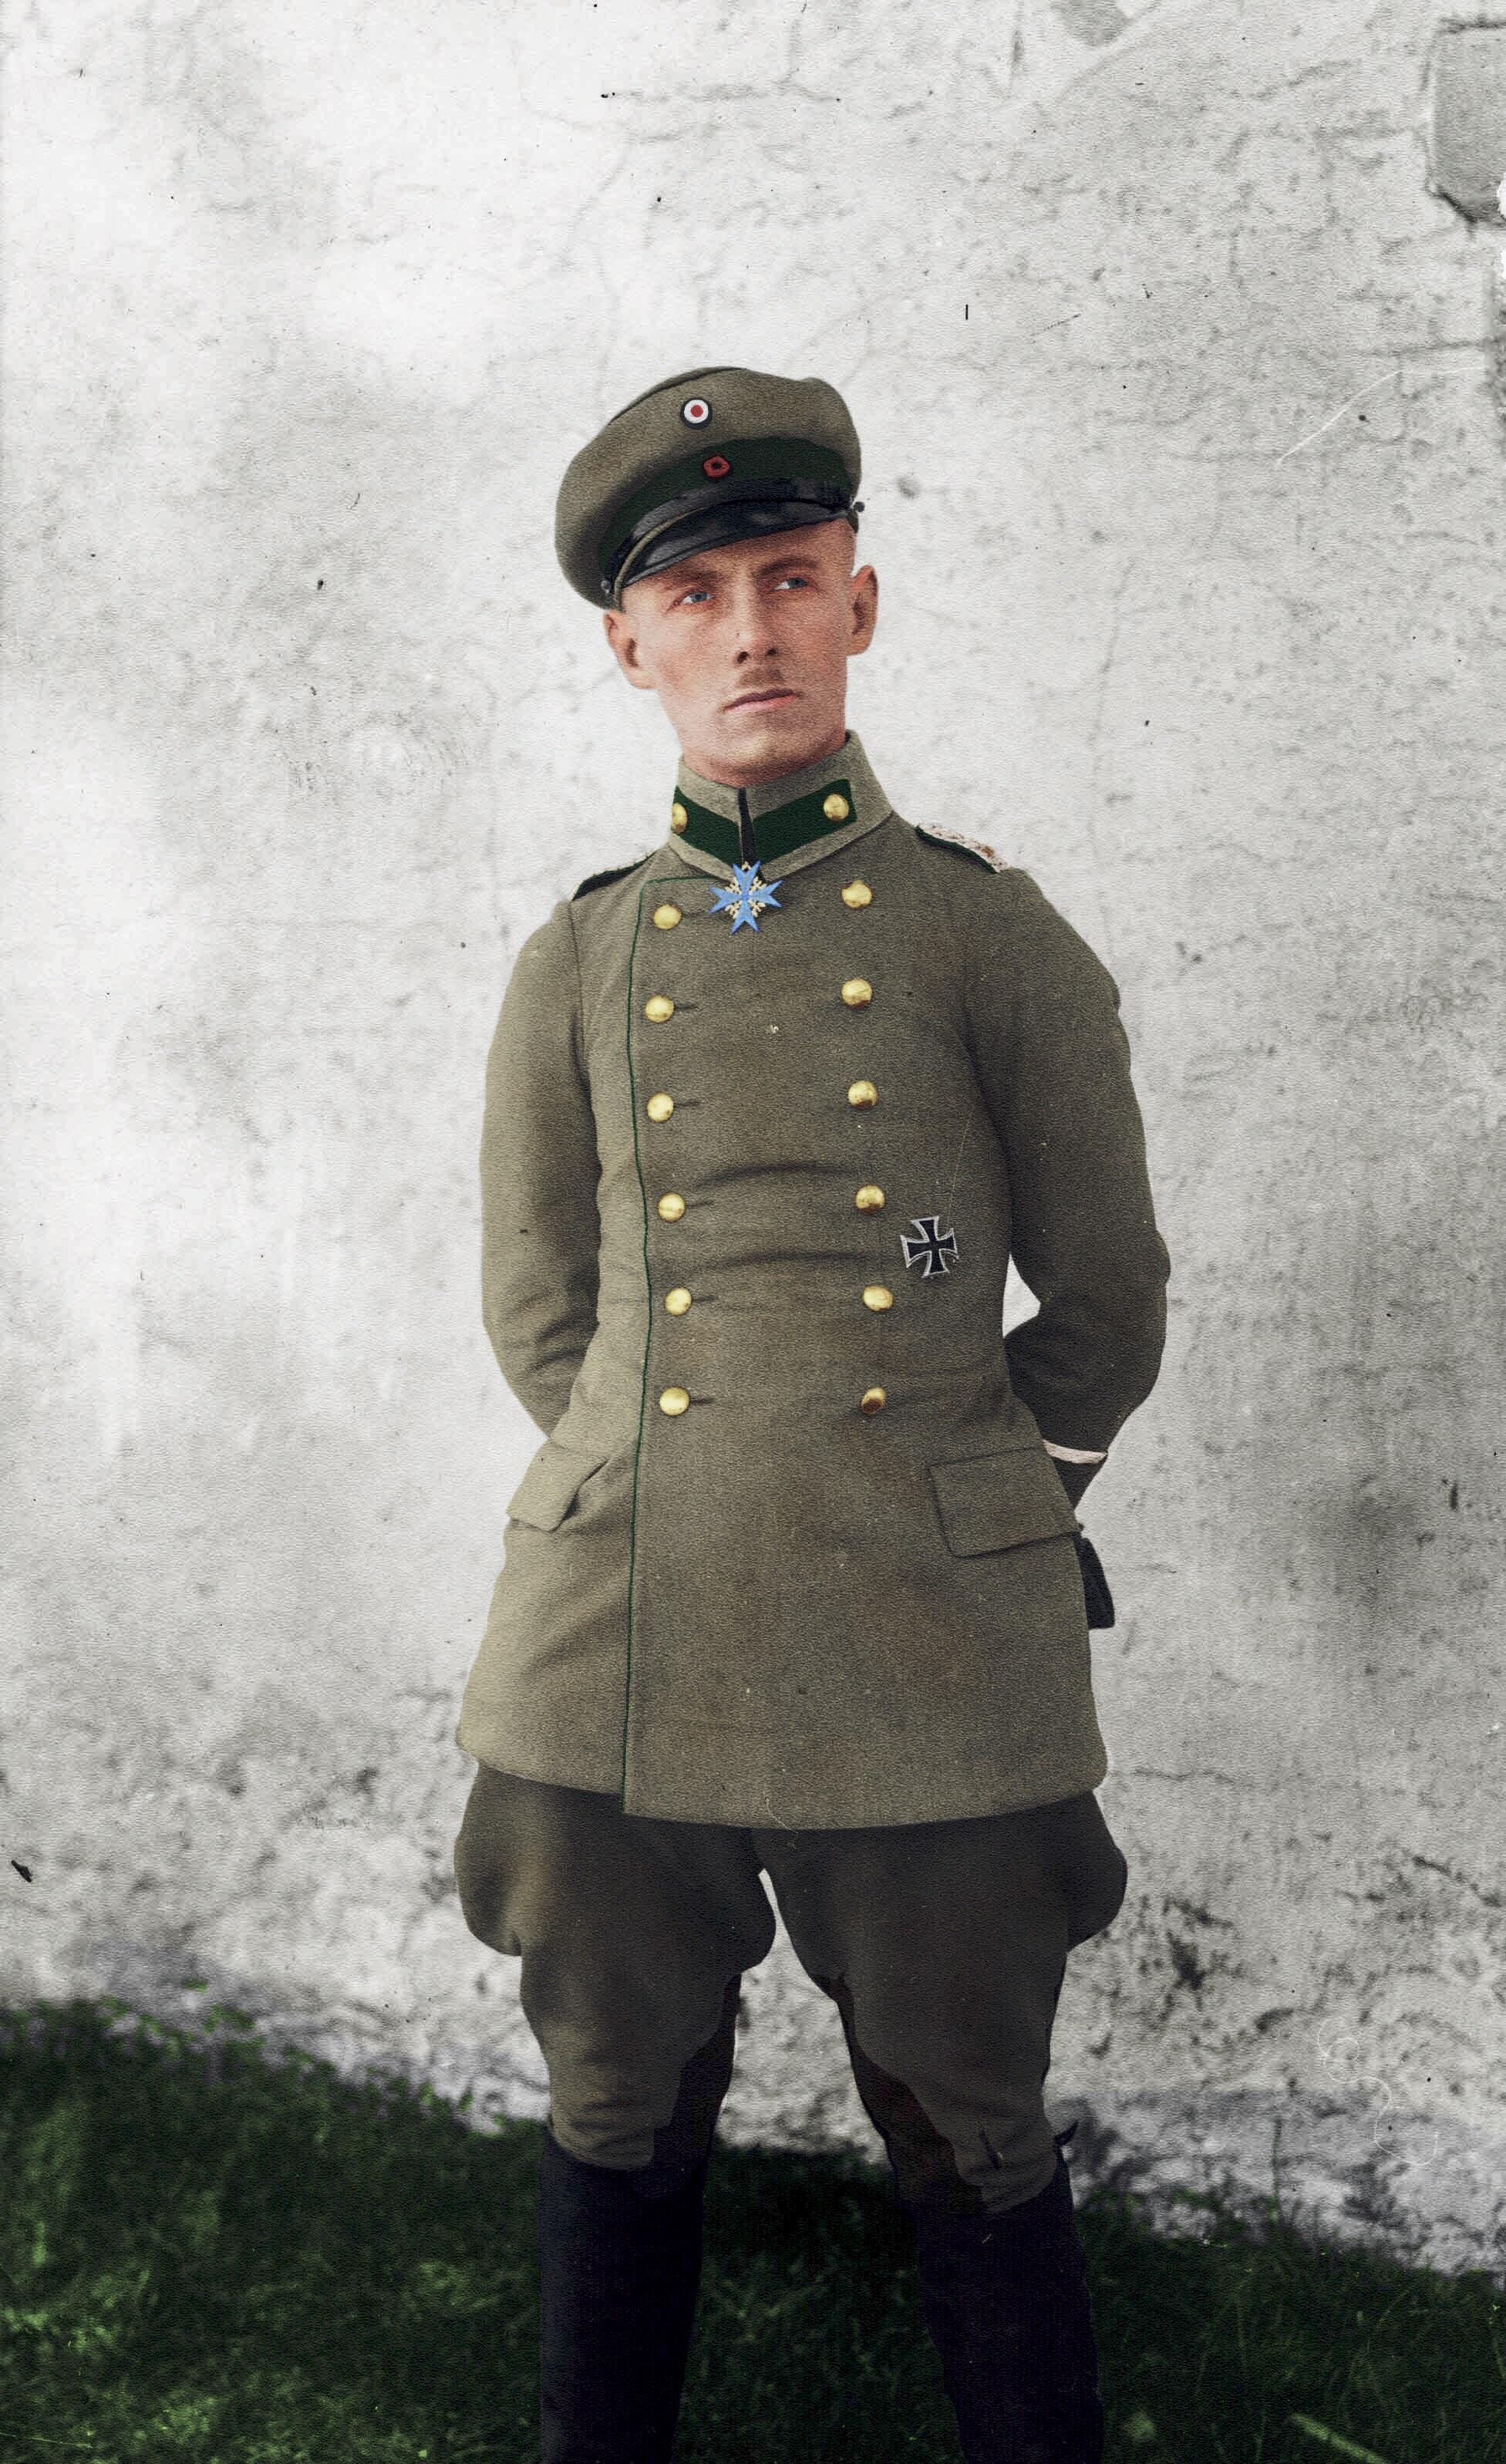 b38305b359e Erwin Rommel shortly after receiving the Pour Le Mérite for his actions  during the Battle of Caporetto in 1917. Colorized using GIMP.